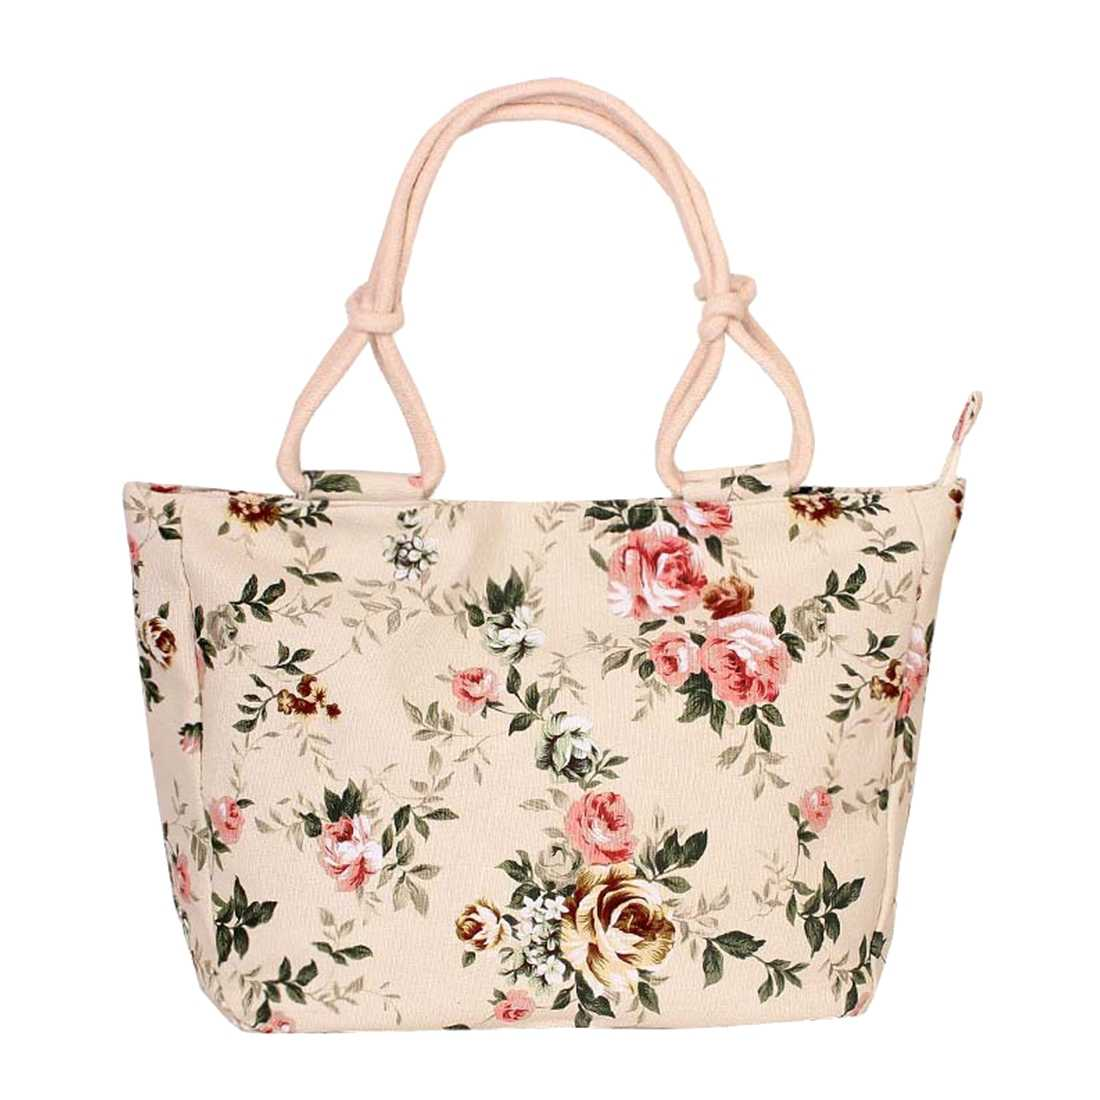 TEXU Women canvas flowers printing bag large capacity portable Shoulder bag